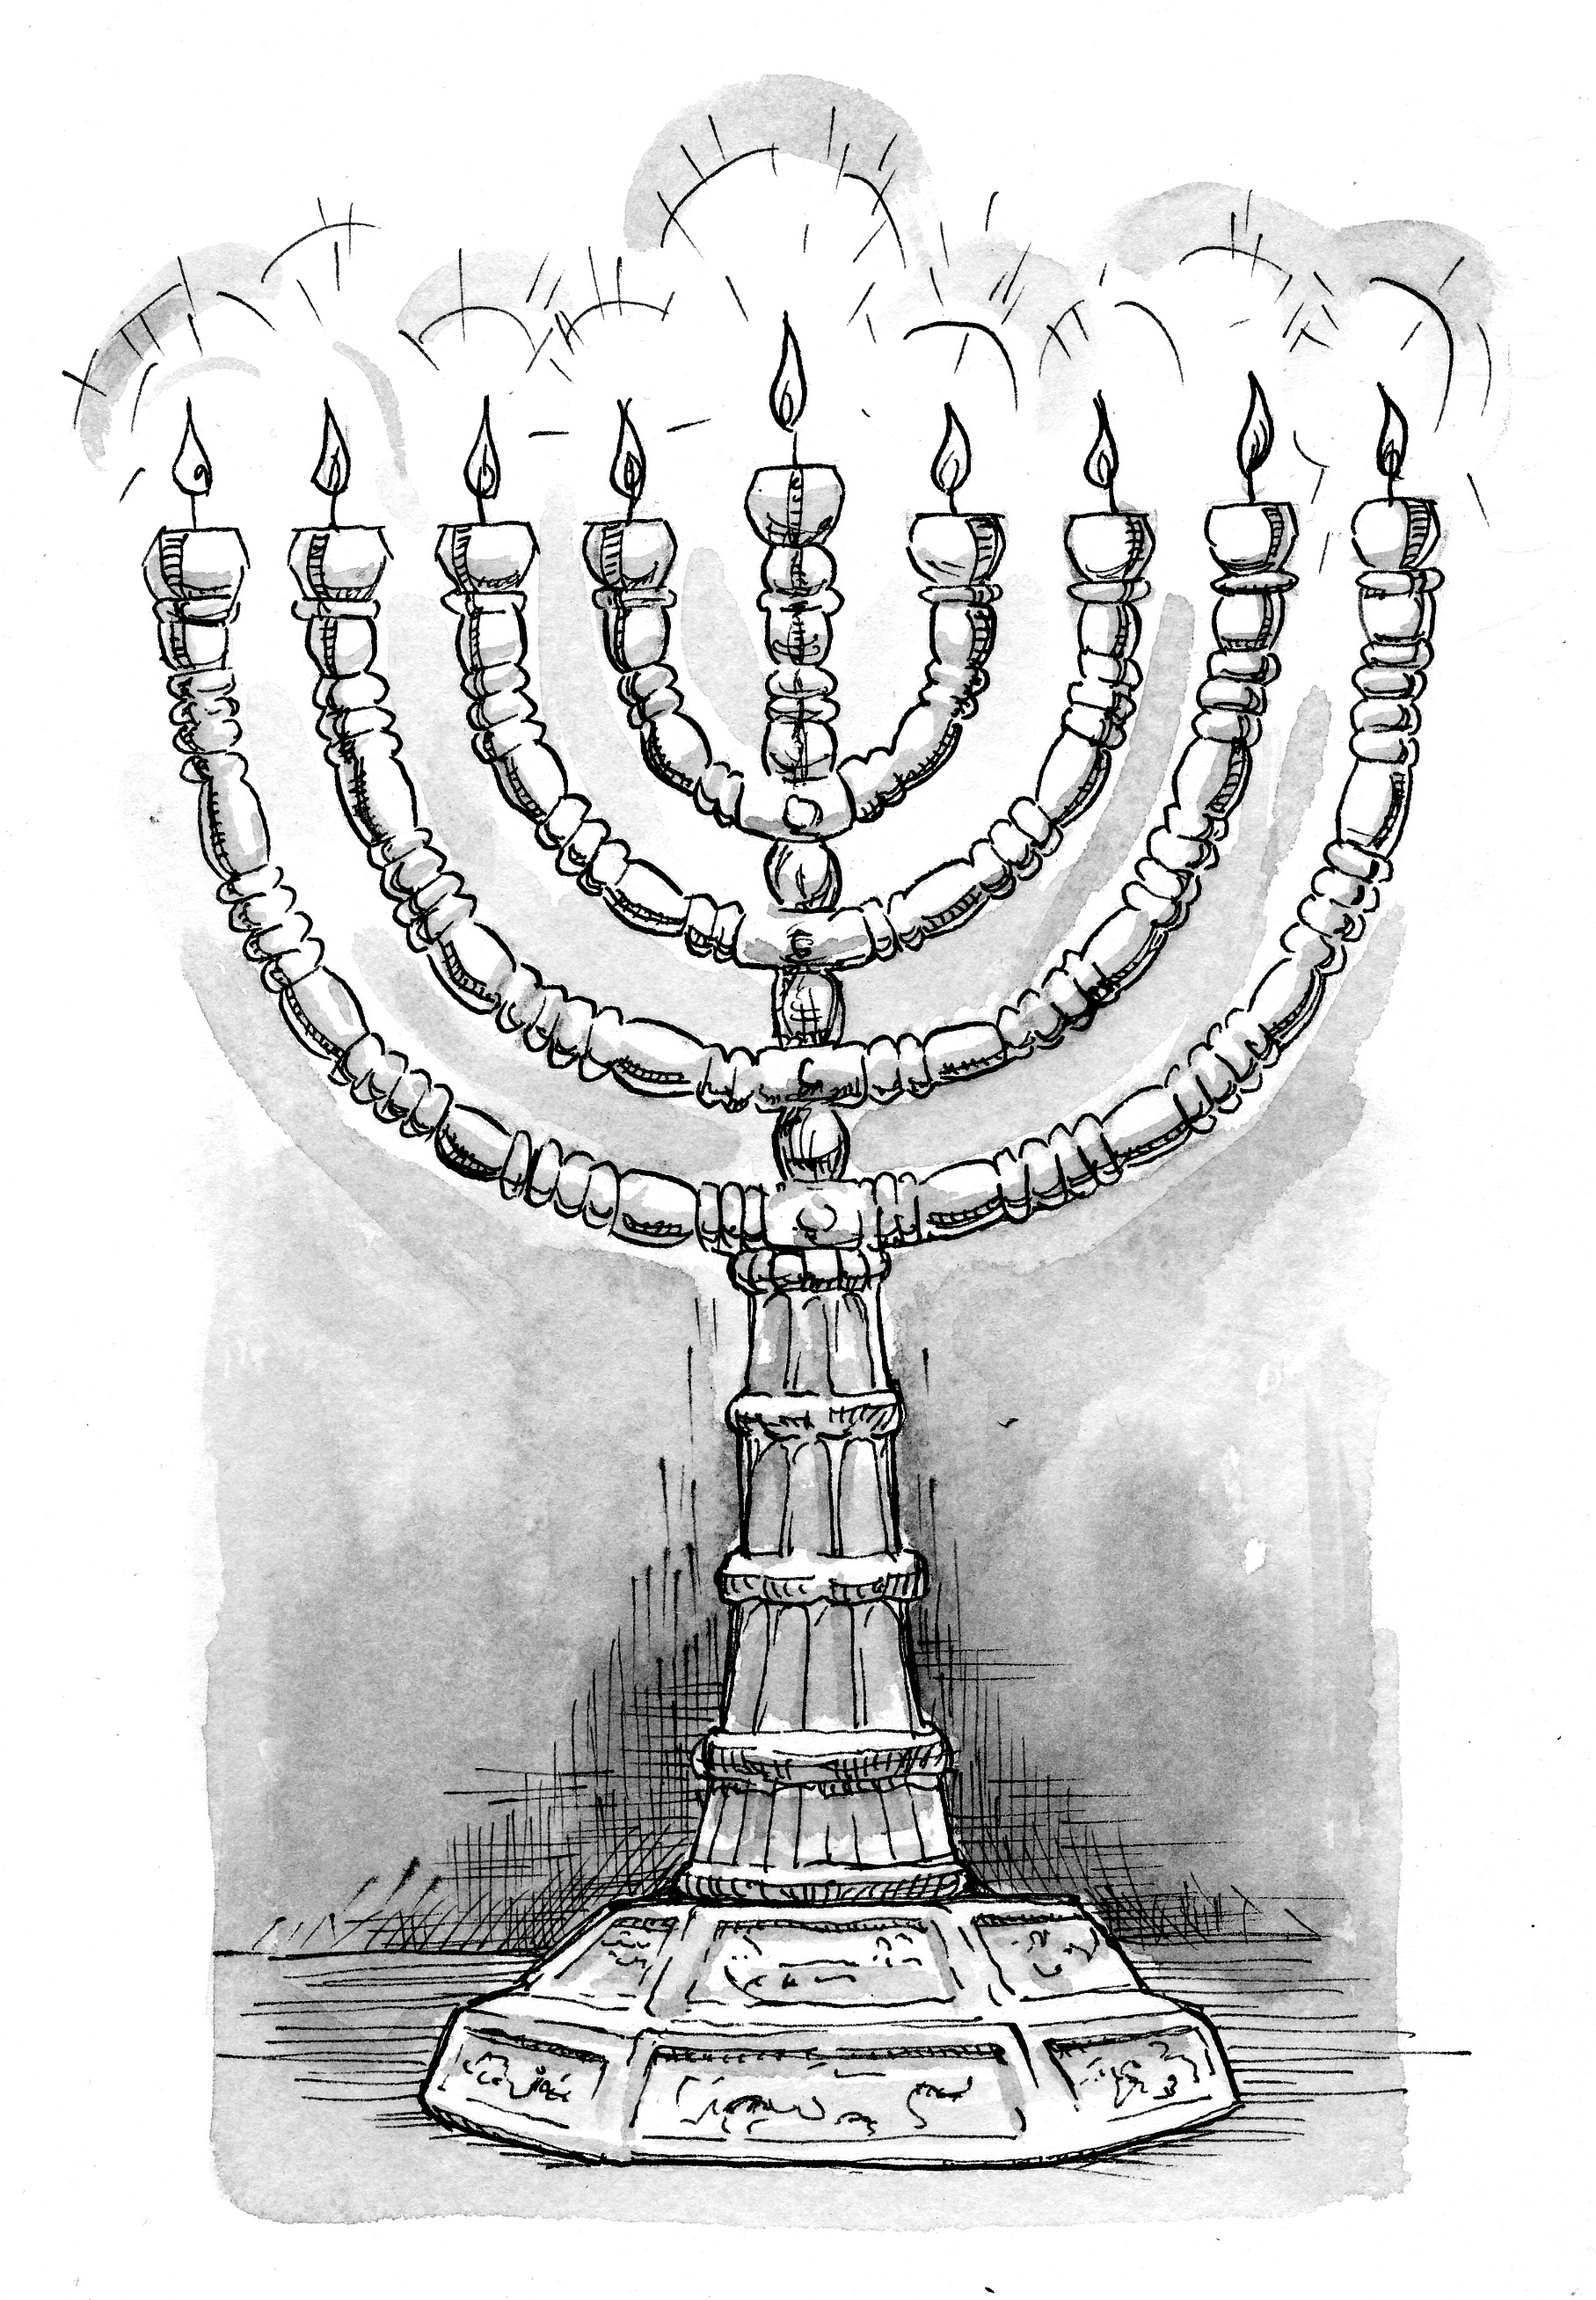 printable coloring pages maccabees | 2 Maccabees 10:3-6 Illustration - Menorah | Saint Mary's Press